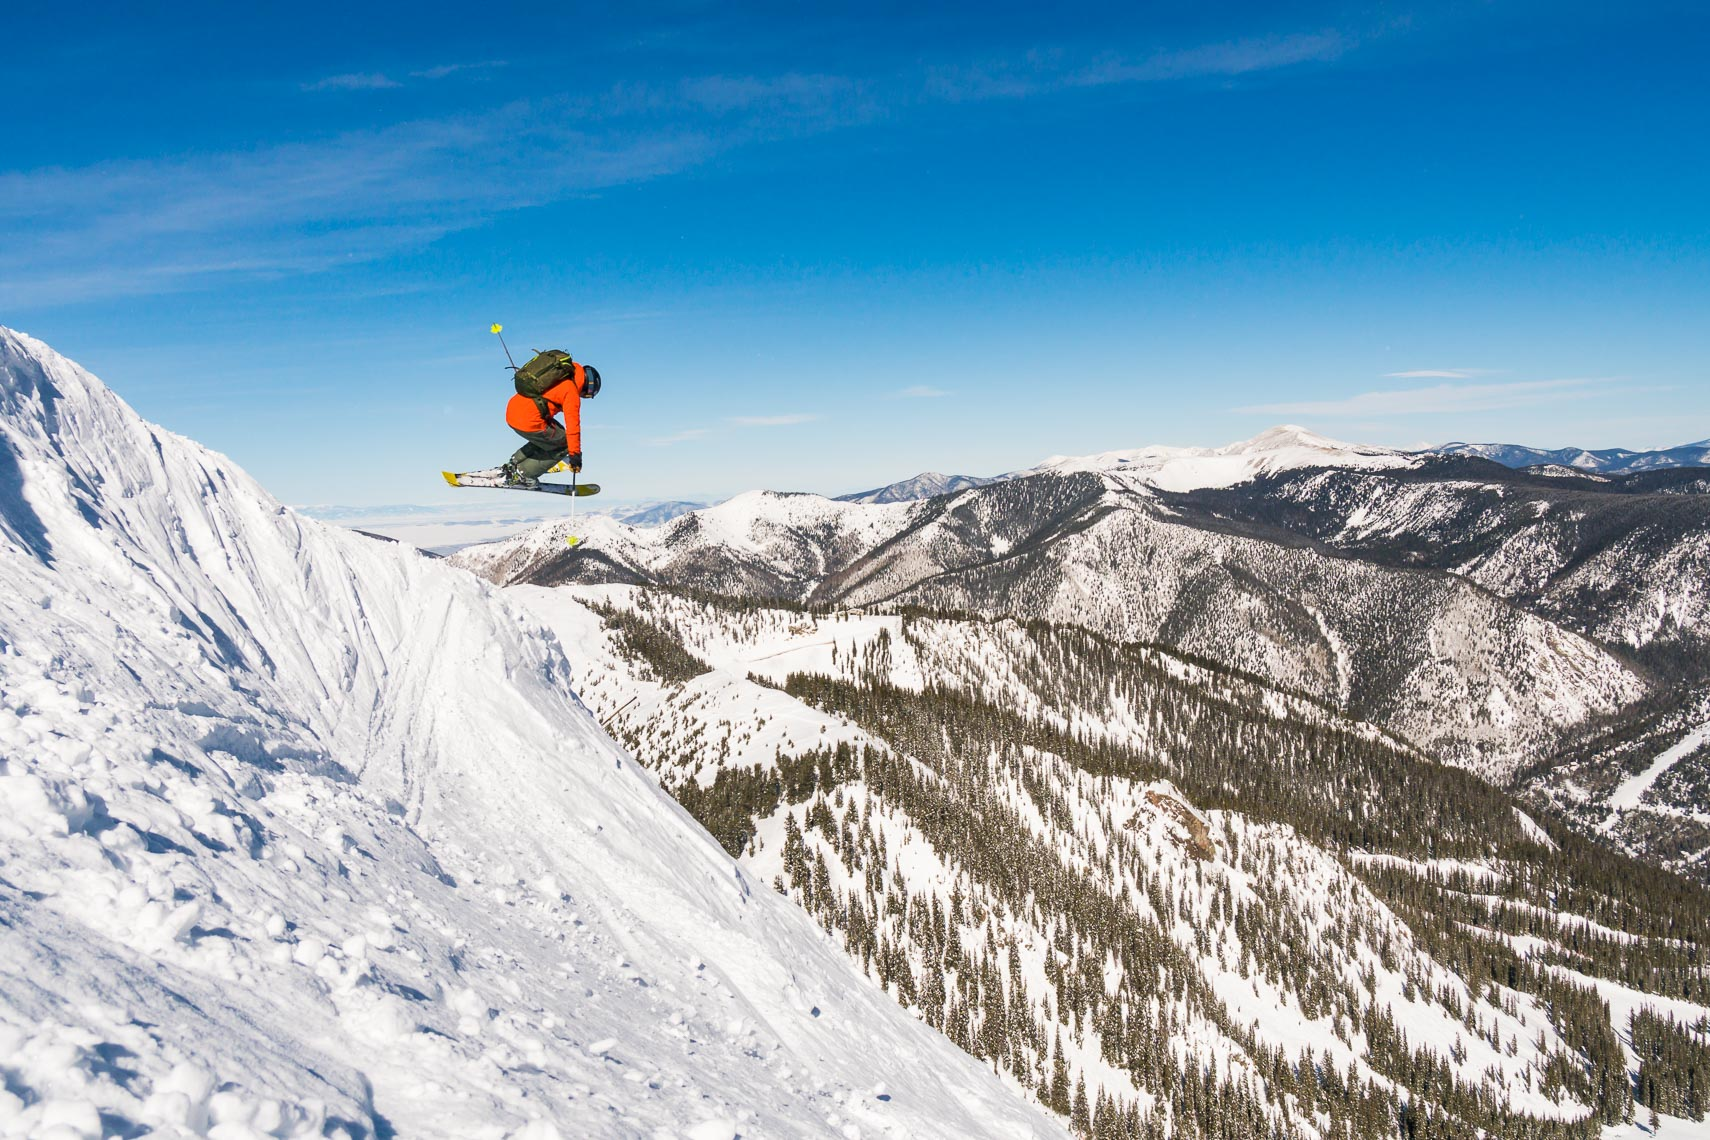 Skier Takes Air Kachina Peak New Mexico | Michael DeYoung